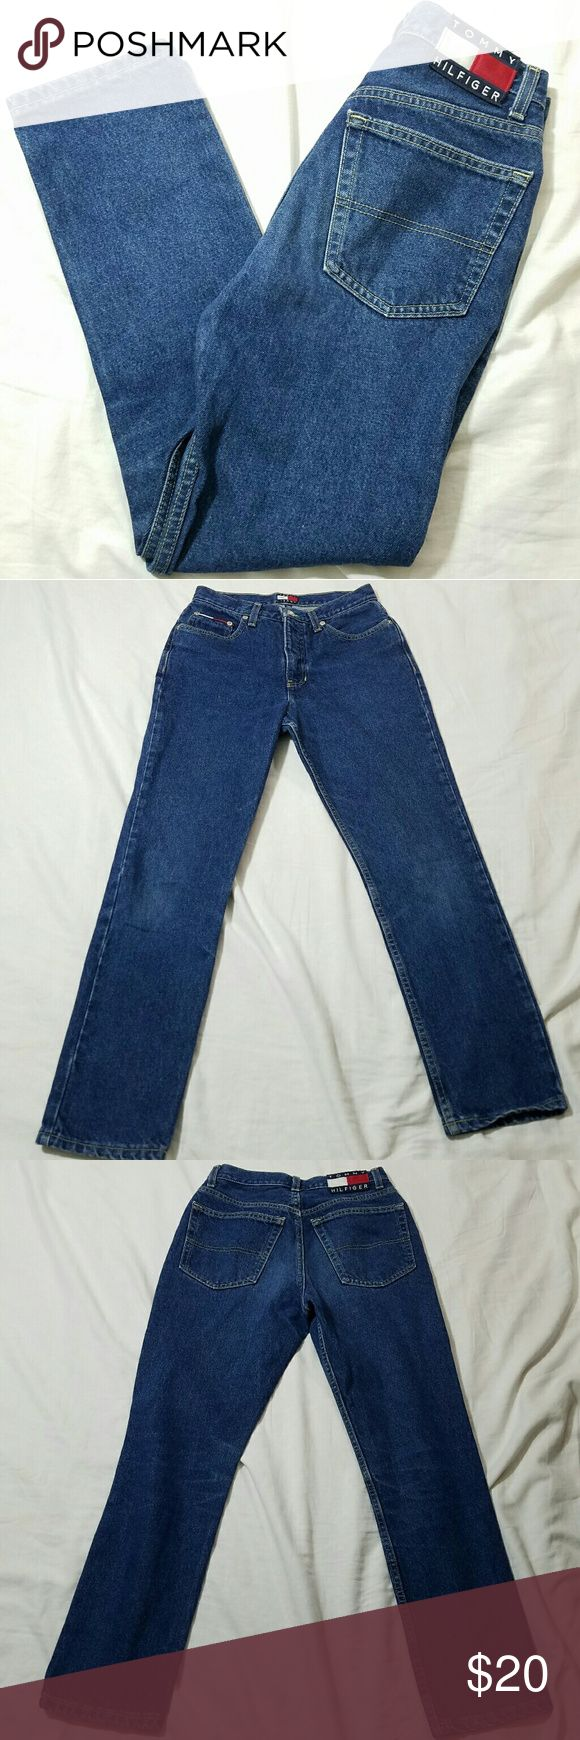 Womens Tommy Hilfiger Jeans Classic Flag Tag 7x28 Womens Tommy Hilfiger Jeans Classic Flag Tag 7x28 Excellent Pre-Owned Condition No rips stains or holes Tommy Hilfiger Jeans Straight Leg